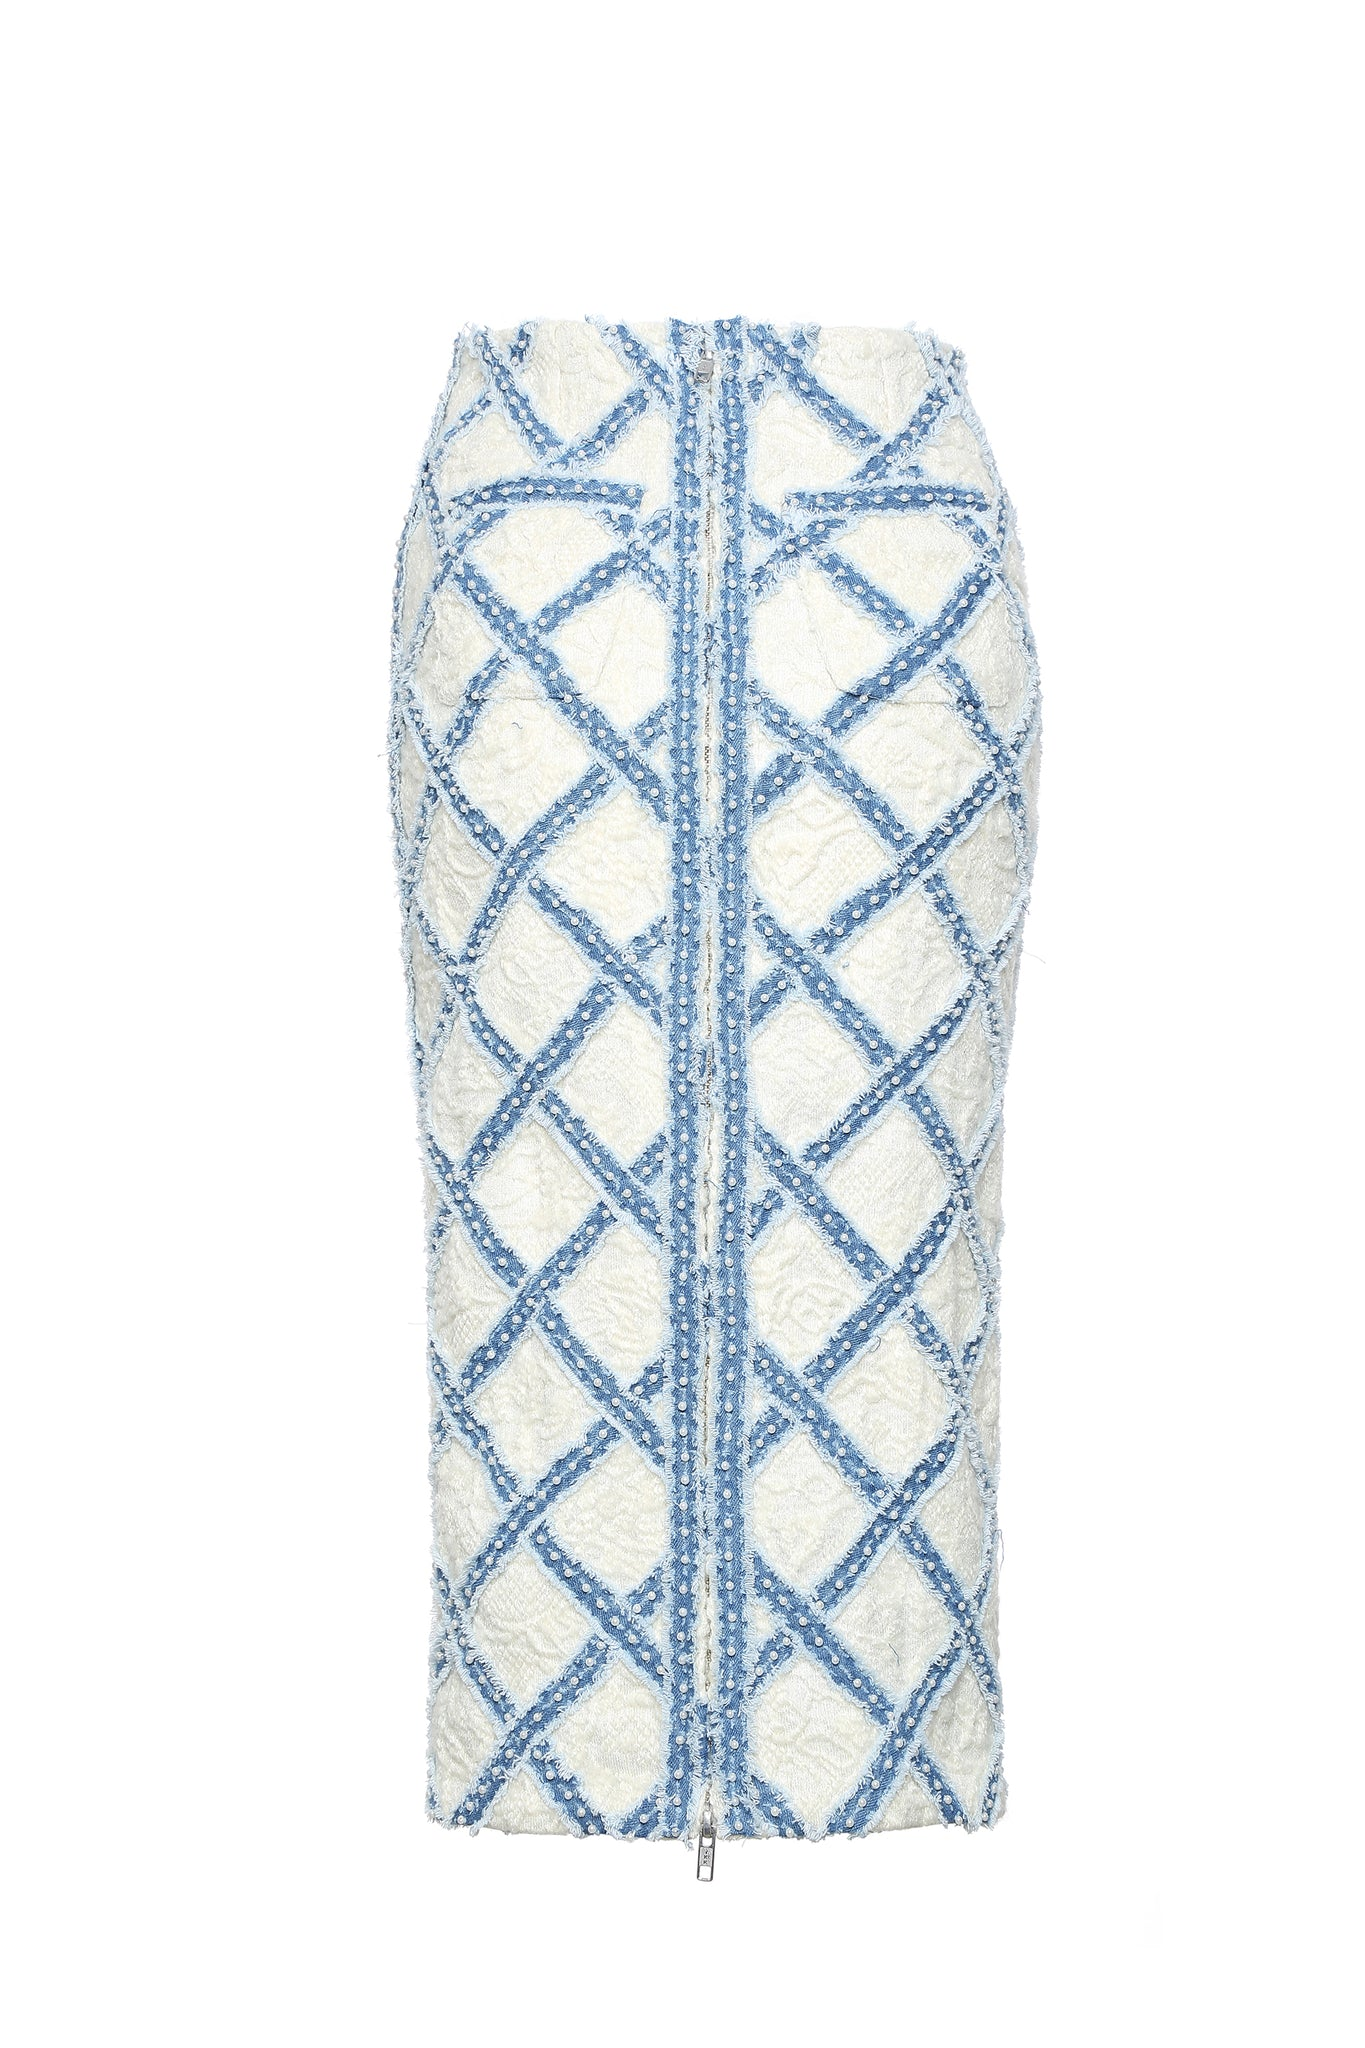 Skirt, Handwoven Denim Diamond Quilt on White Lace Wool, Long